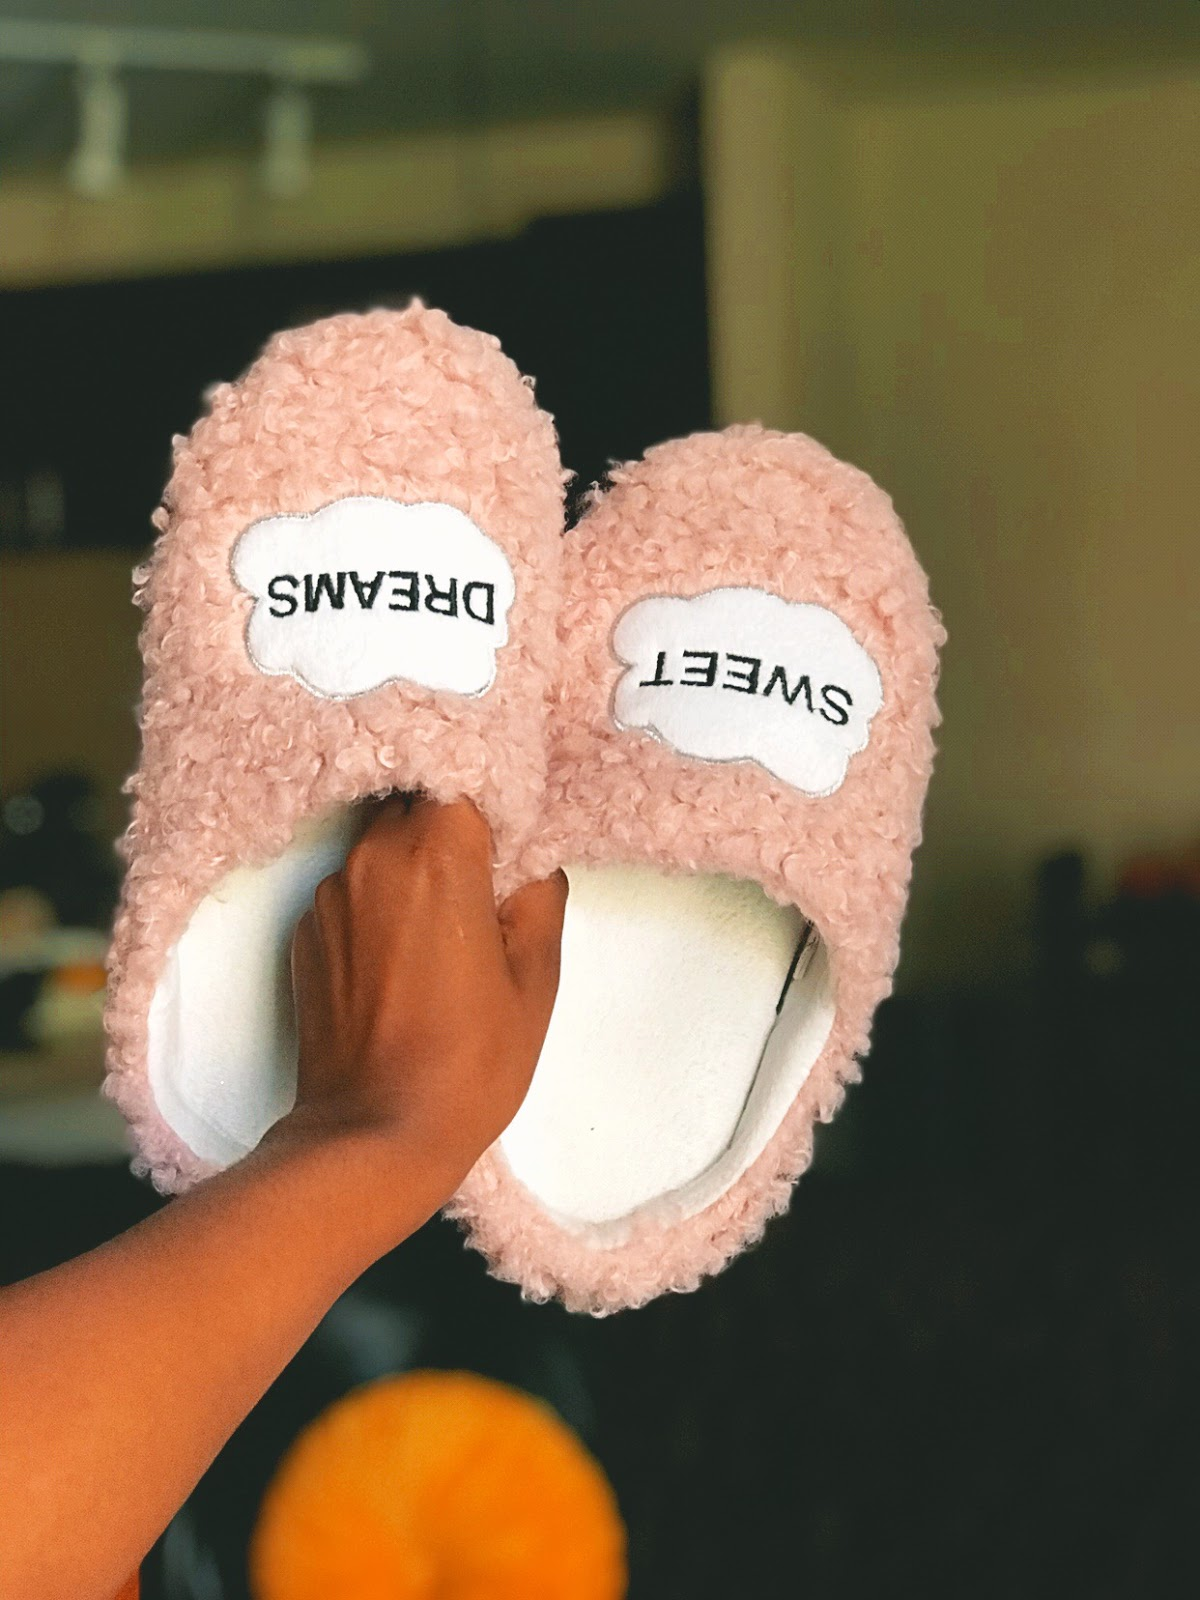 EVERYTHING I Am Obsessing Over At The Moment: Food, Shopping And A New Pair Of Slippers!